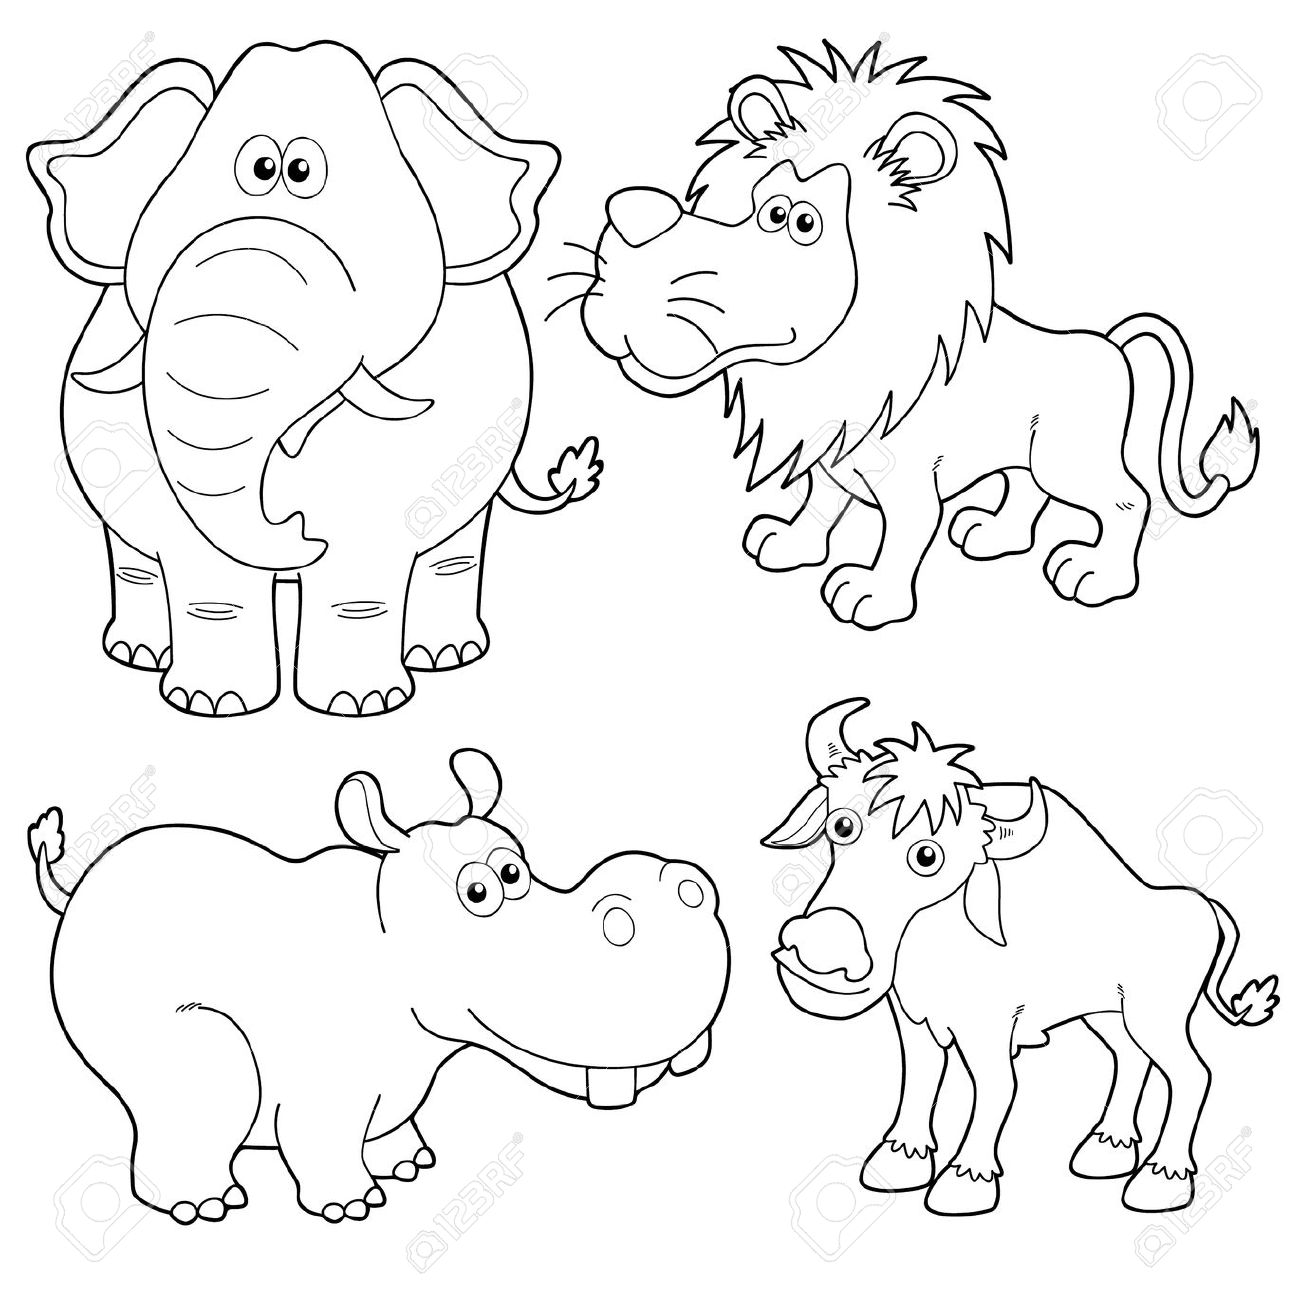 Line Drawings Of Jungle Animals : Realistic animals drawing at getdrawings free for